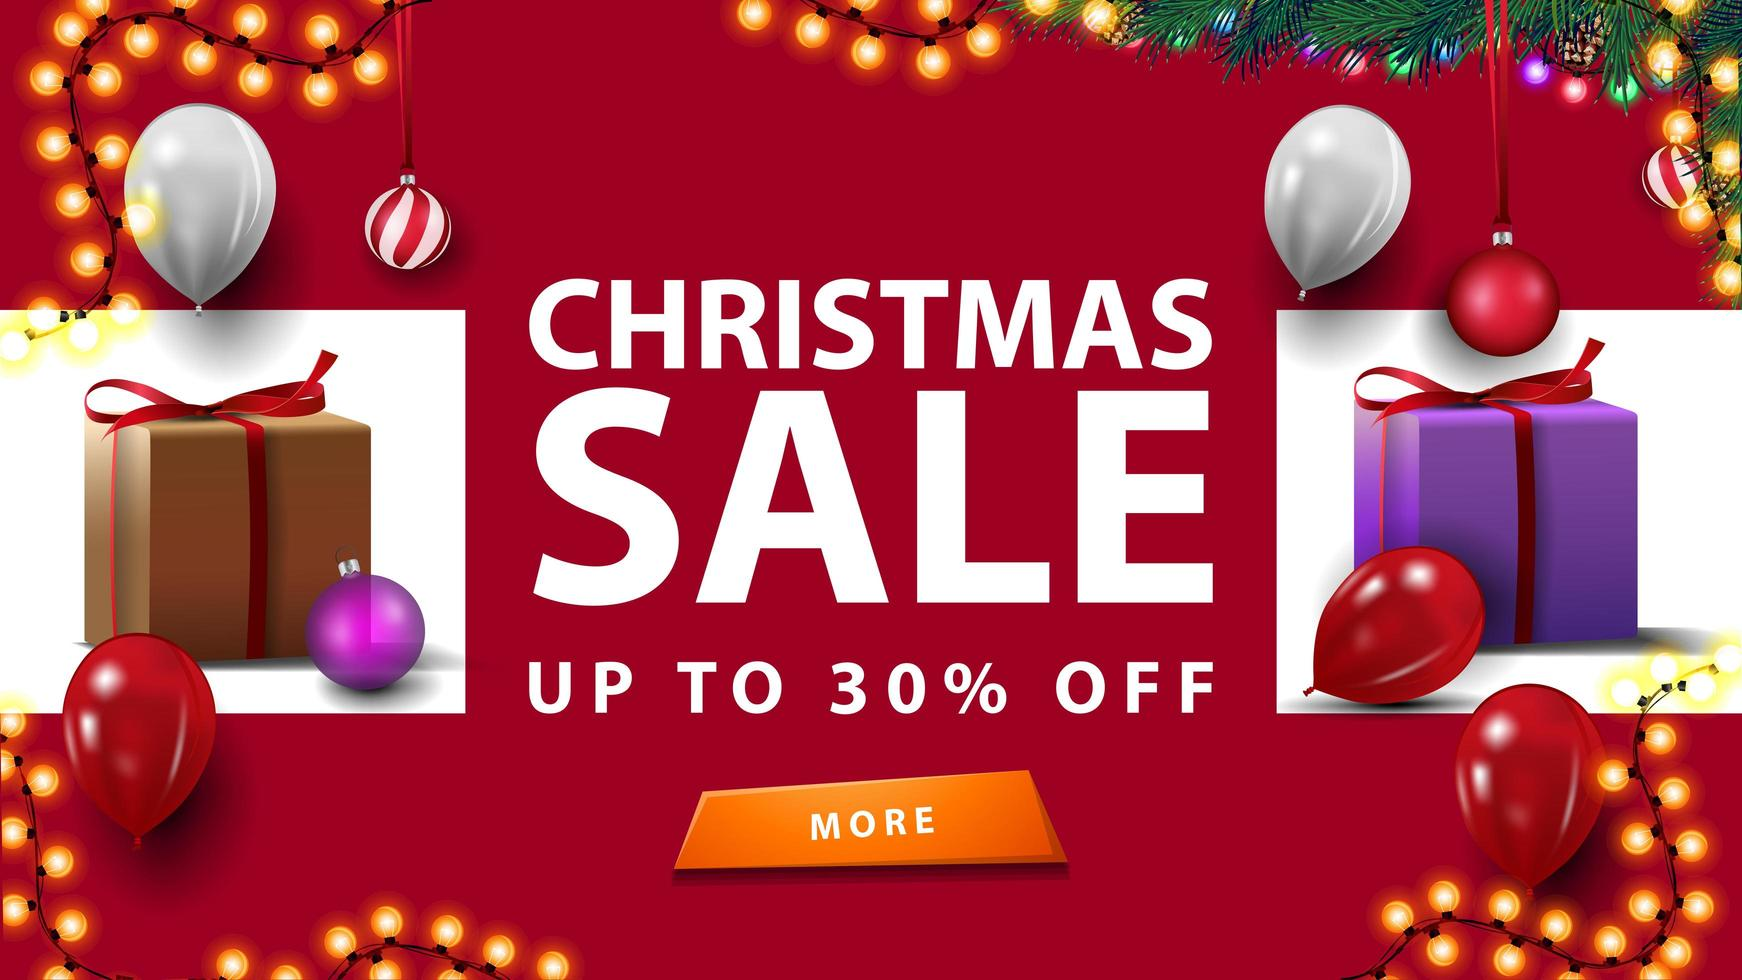 Christmas sale, up to 30 off, red discount banner with Christmas presents, garland and balloons vector